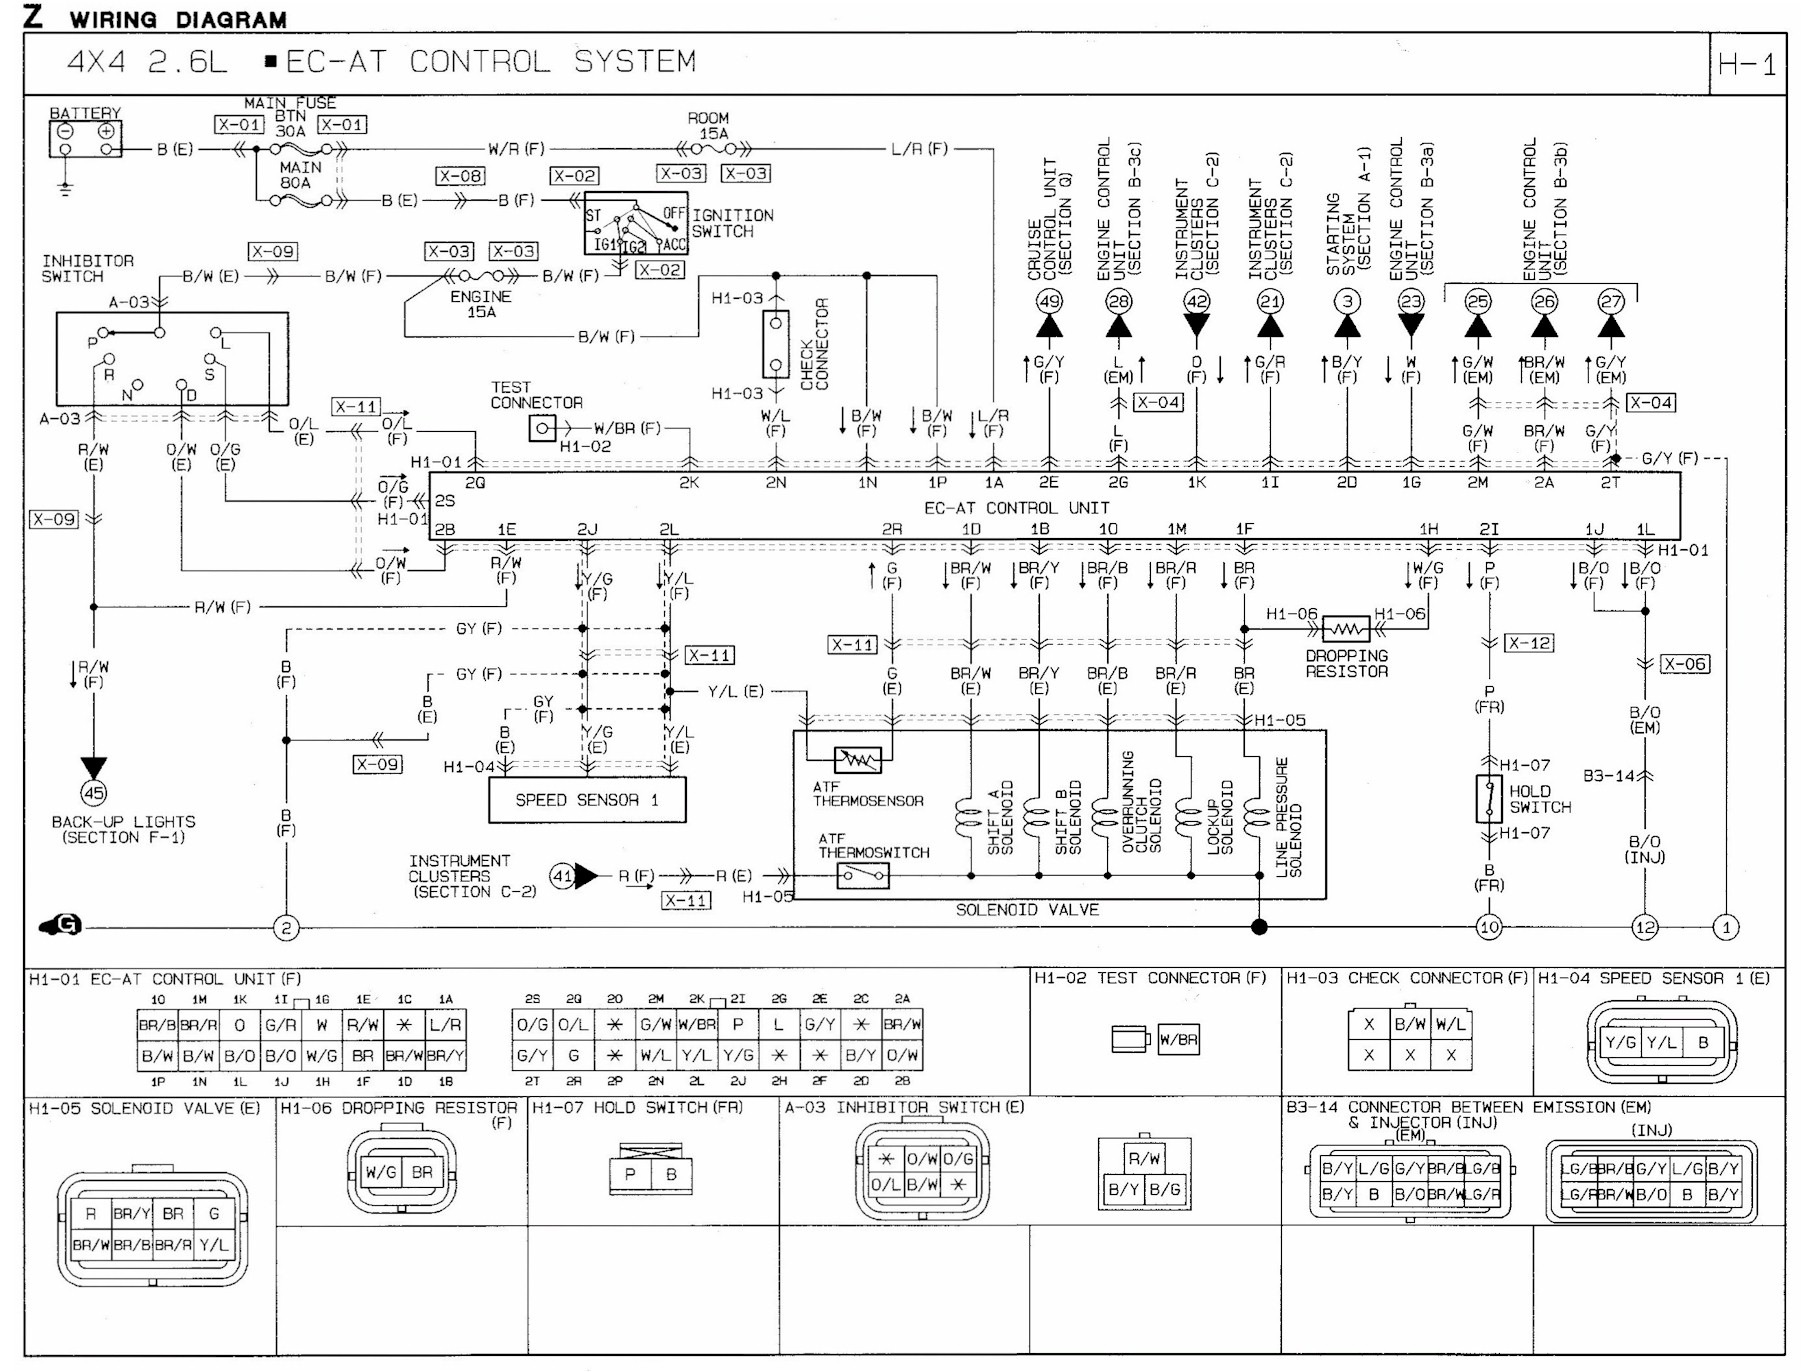 1989 mazda b2200 wiring diagram schematic 1993 mazda b2600 wiring diagram e2 wiring diagram  1993 mazda b2600 wiring diagram e2